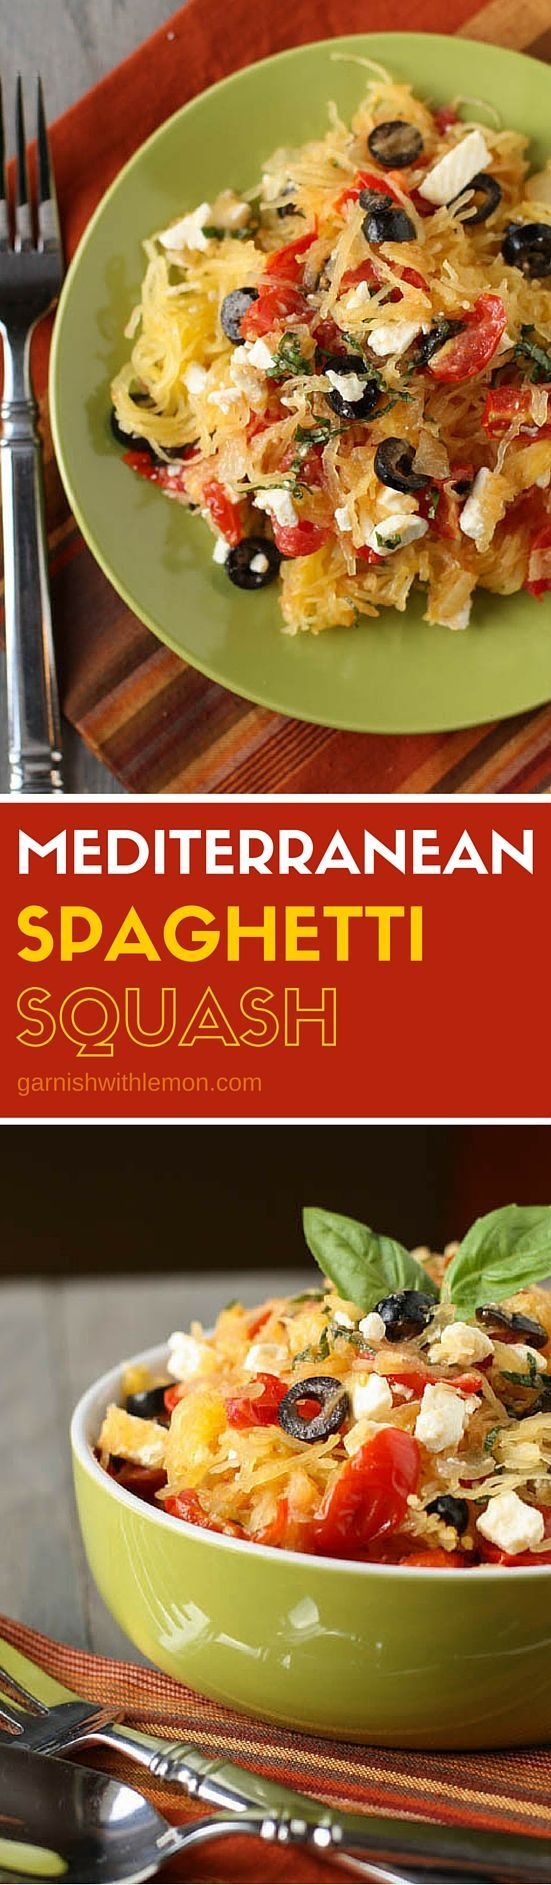 Looking for Meatless Monday dinner recipes? This baked Mediterranean Spaghetti Squash is so fresh and filling you won't miss the meat!